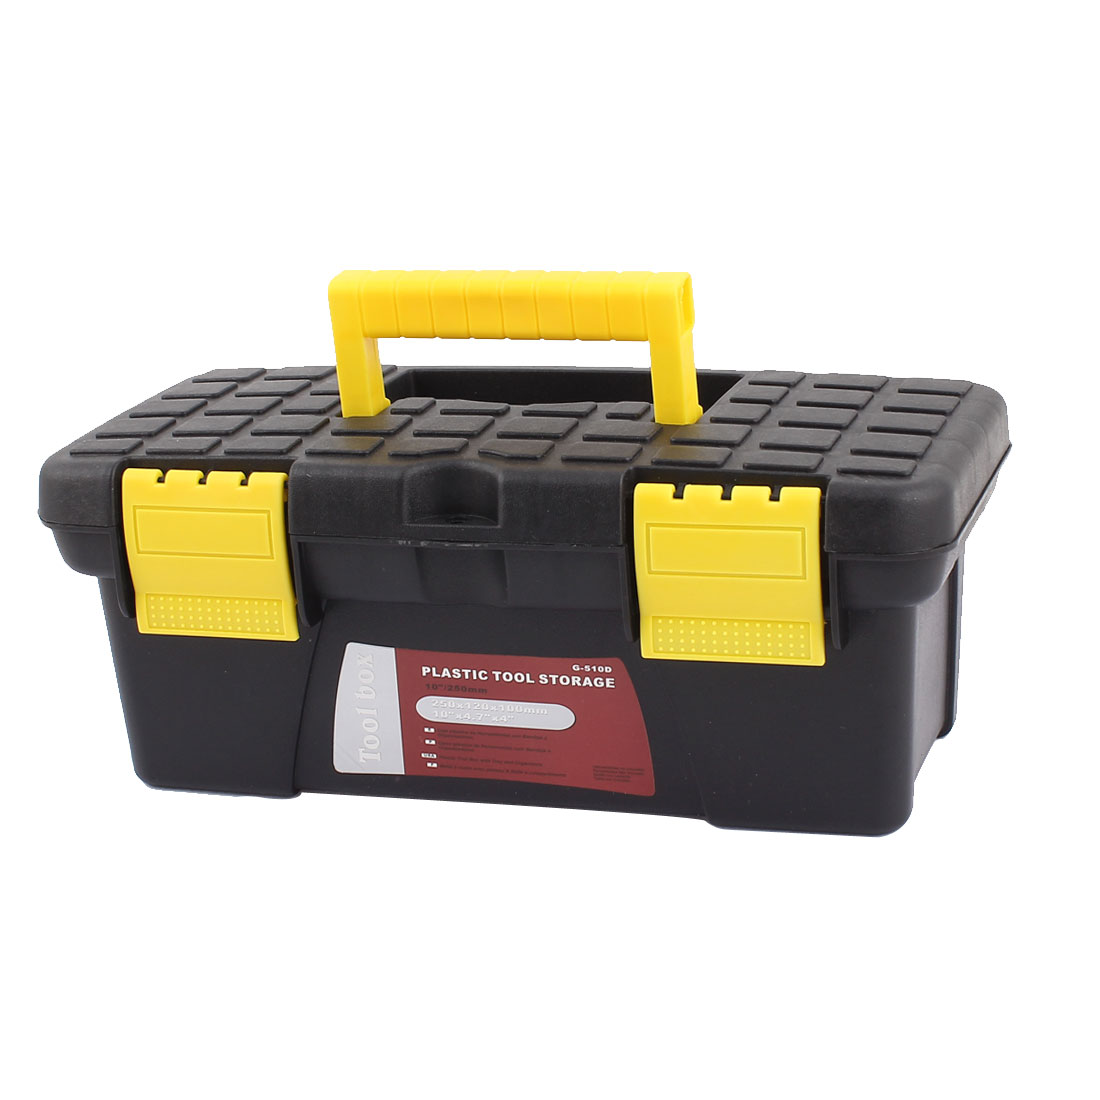 Electrician Engineer Plastic Dual Layers Tools Hardware Storage Box Black Yellow